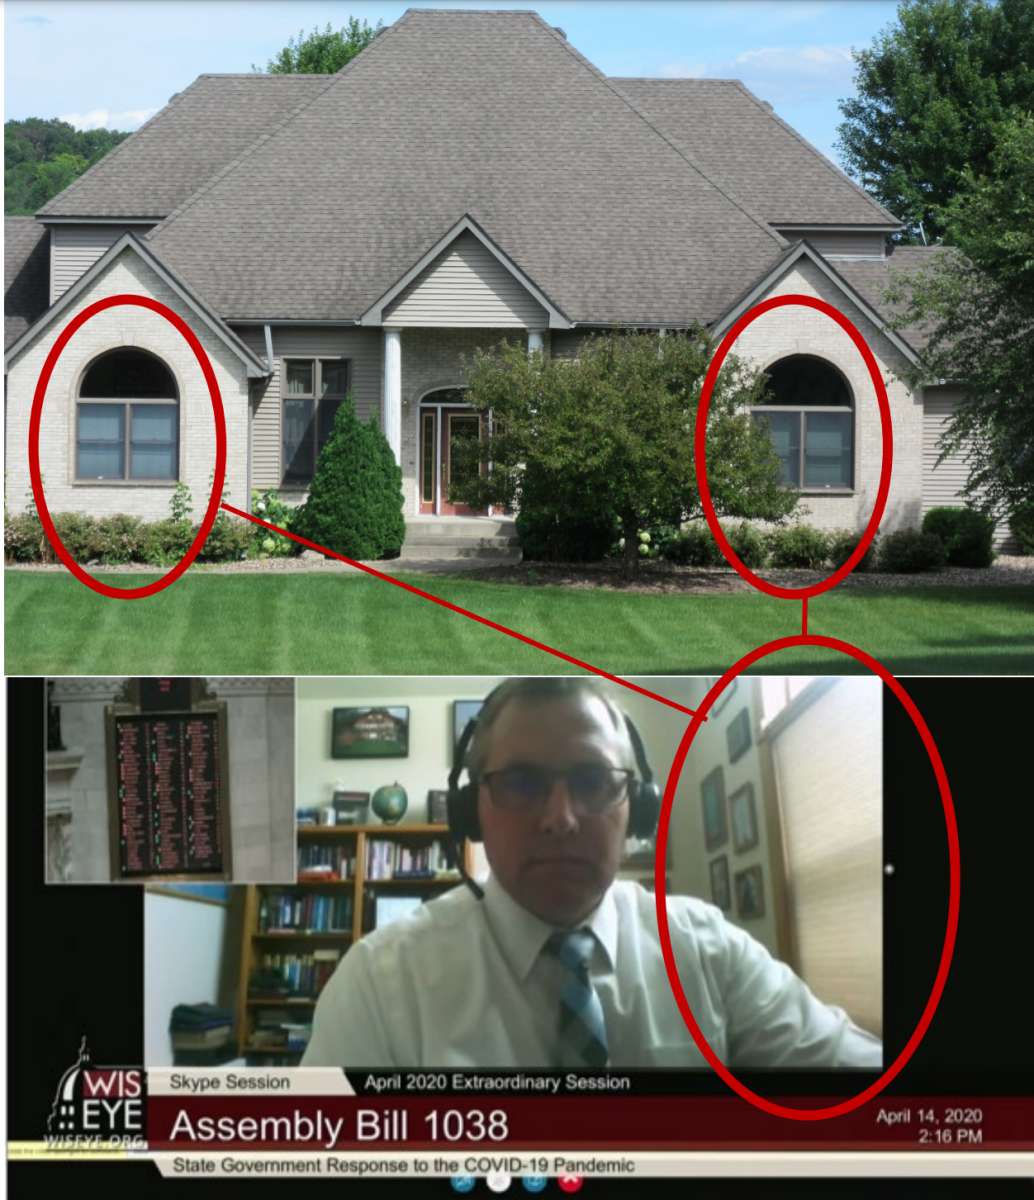 One of the complaints includes photos of Zimmerman appearing on video with windows consistent with the Clifton house